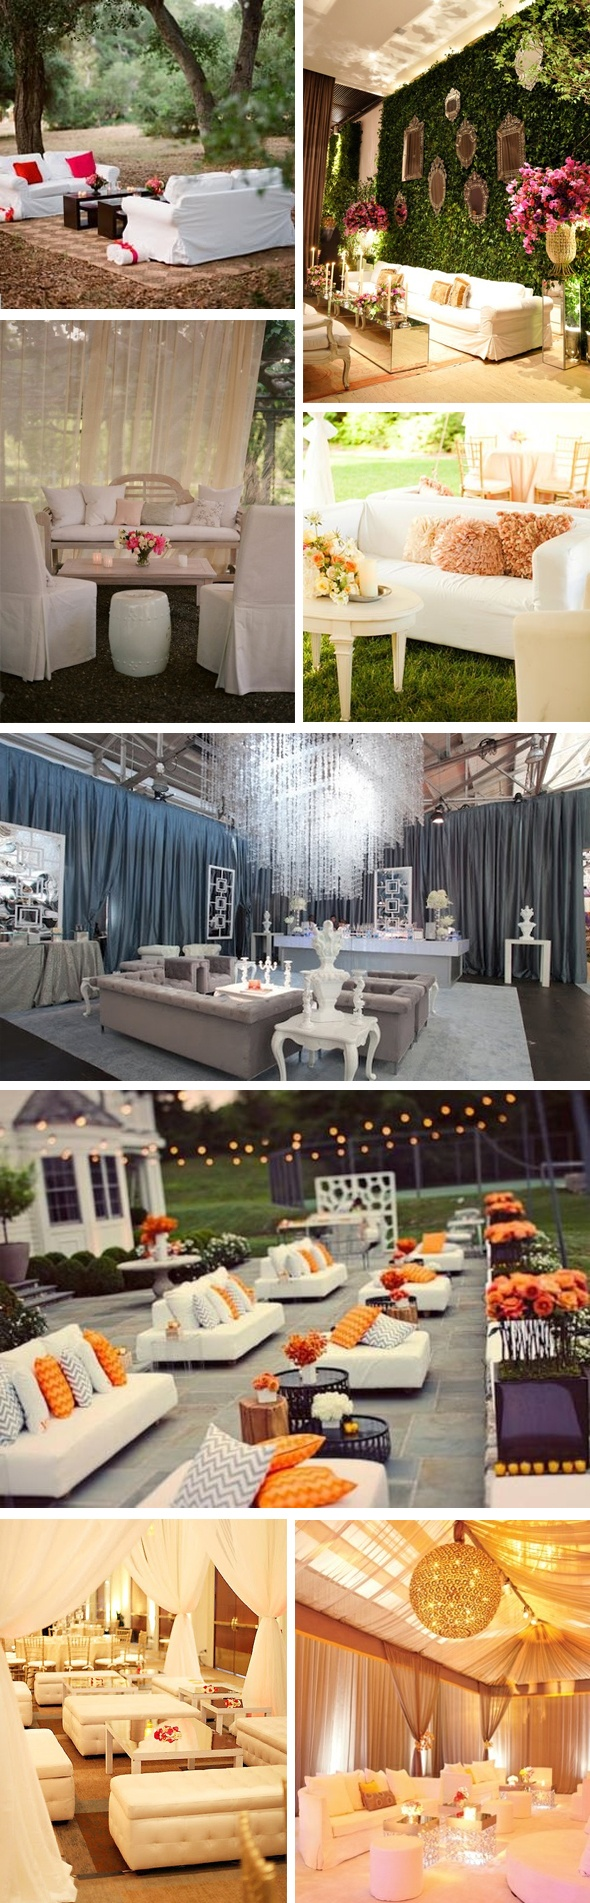 21 Best Luxury Wedding Planner Tiffany Cook In The News Images On